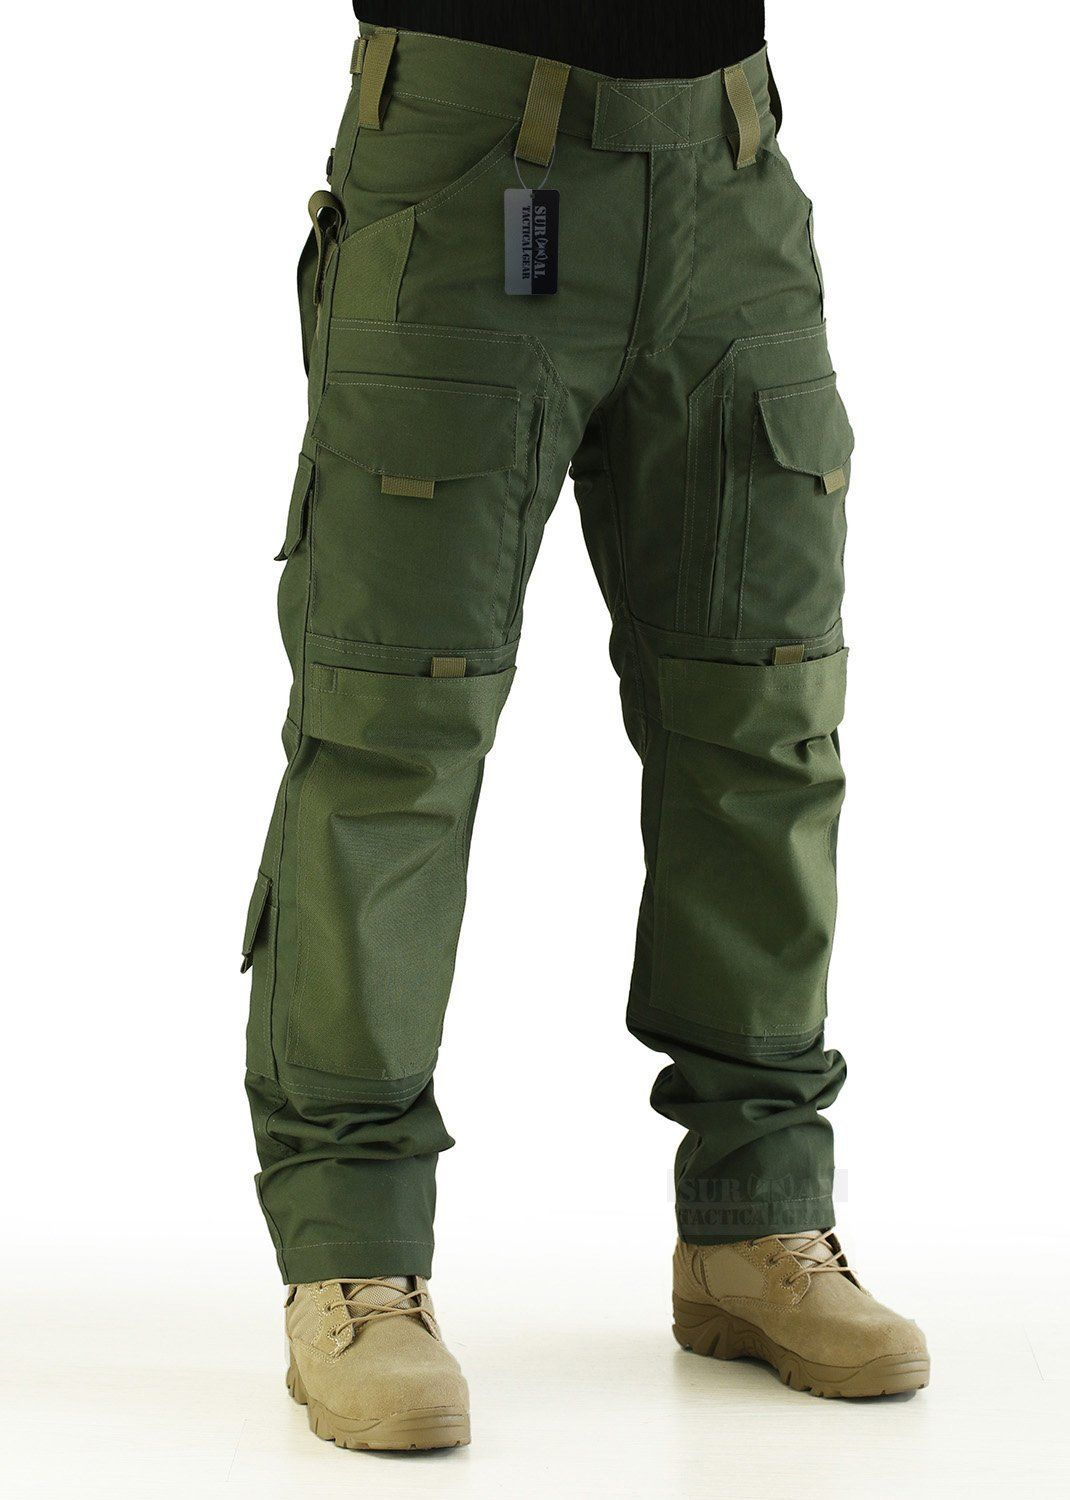 6dc23be546 Amazon.com : ZAPT Tactical Molle Ripstop Combat Trousers Army  Multicam/A-TACS LE Camo Pants for Men : Sports & Outdoors